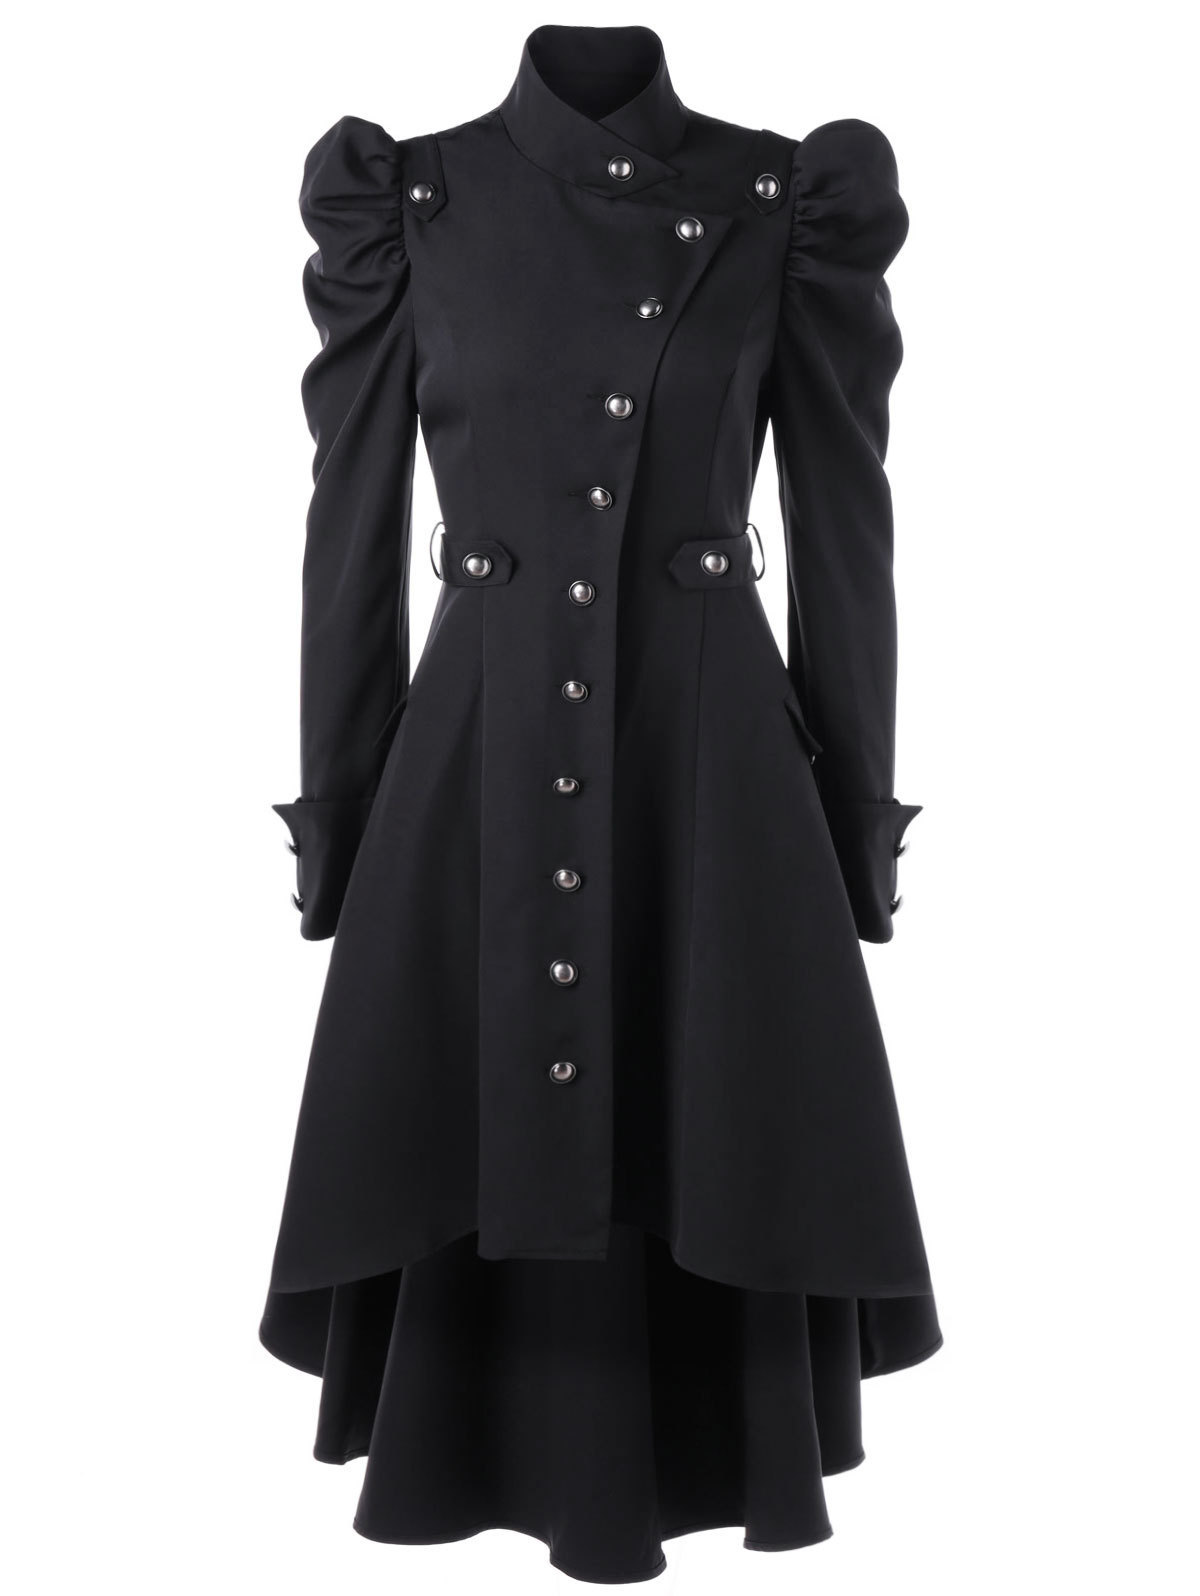 2018 XXXL Trench Coat Stand Collar Slim Fashion Long Medieval Trench Woolen Coat Women Winter Black Stand Collar Gothic